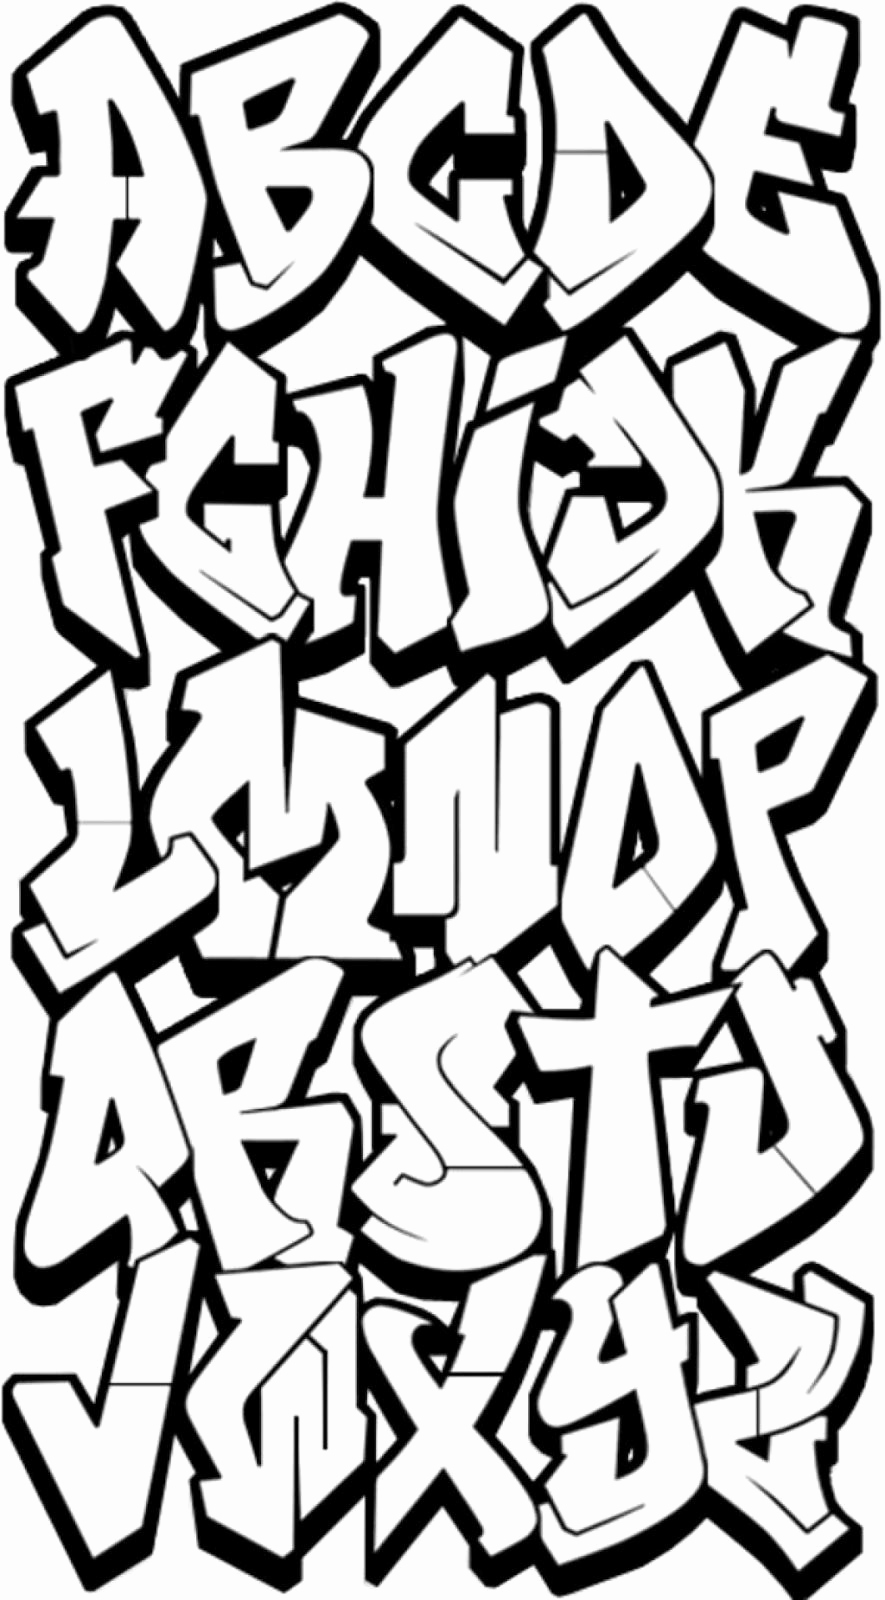 Graffiti Alphabet Vorlagen Elegant How to Make A Grafitti Buscar Con Google Art